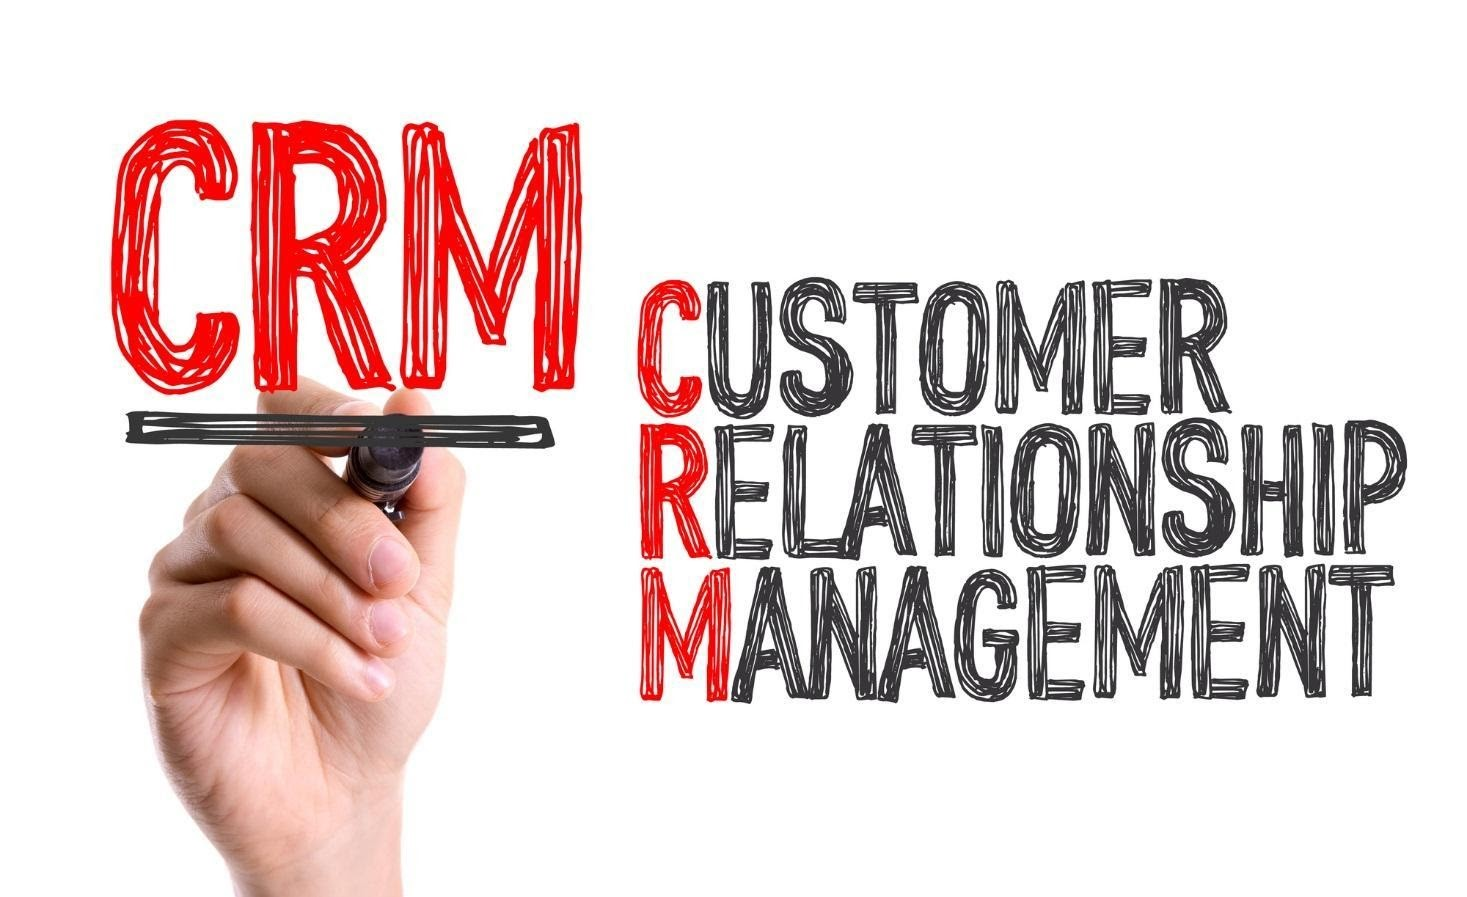 costo de un software CRM